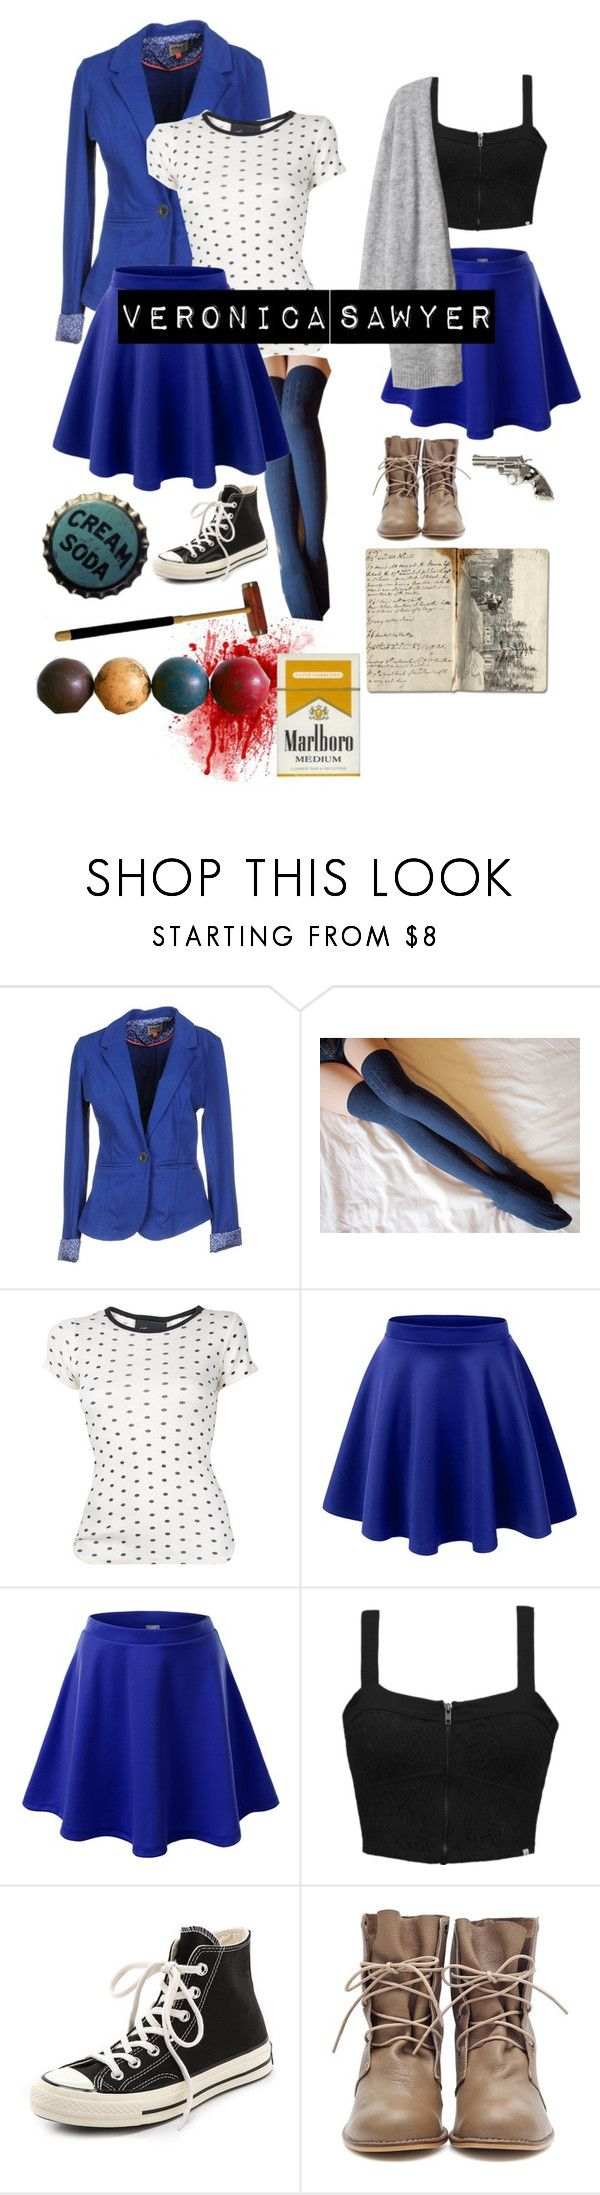 """Veronica Sawyer - Heathers the Musical Halloween Costume"" by hannahefay ❤ liked on Polyvore featuring ONLY, Edith A. Miller, LE3NO, J.TOMSON, Element, Converse, Yves Saint Laurent and Rockwood"